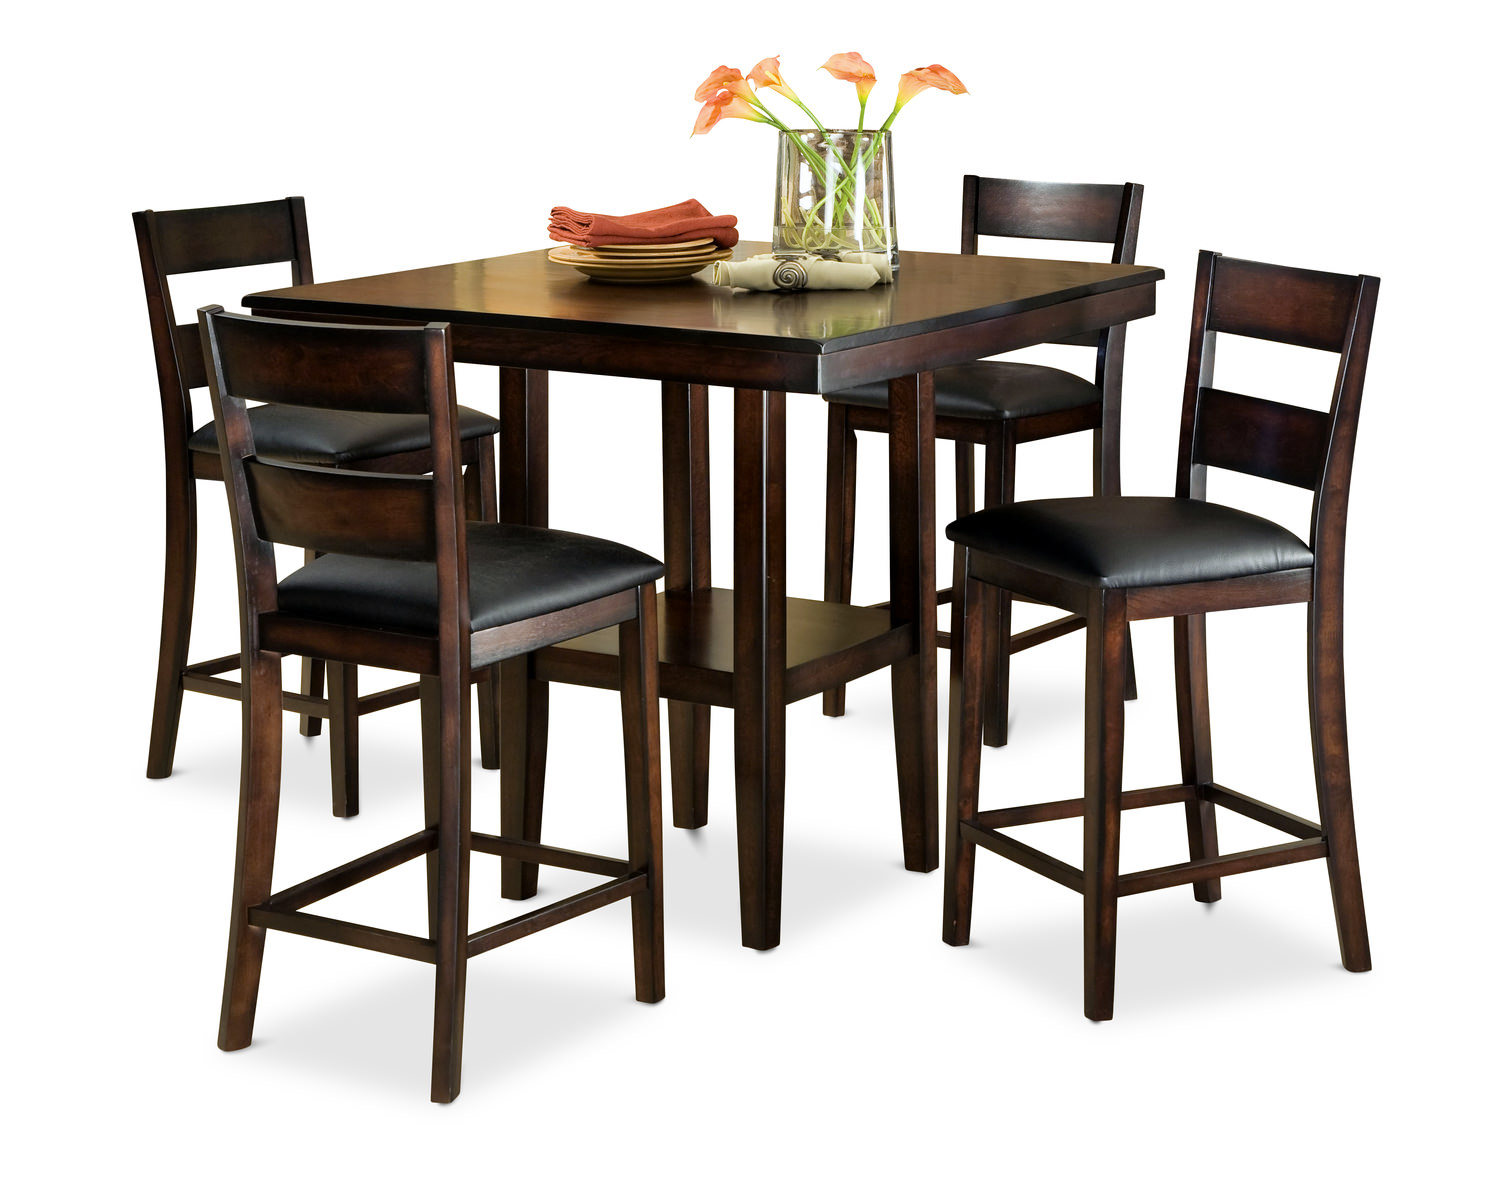 Pendleton Dining Table With 4 Counter Stools Hom Furniture